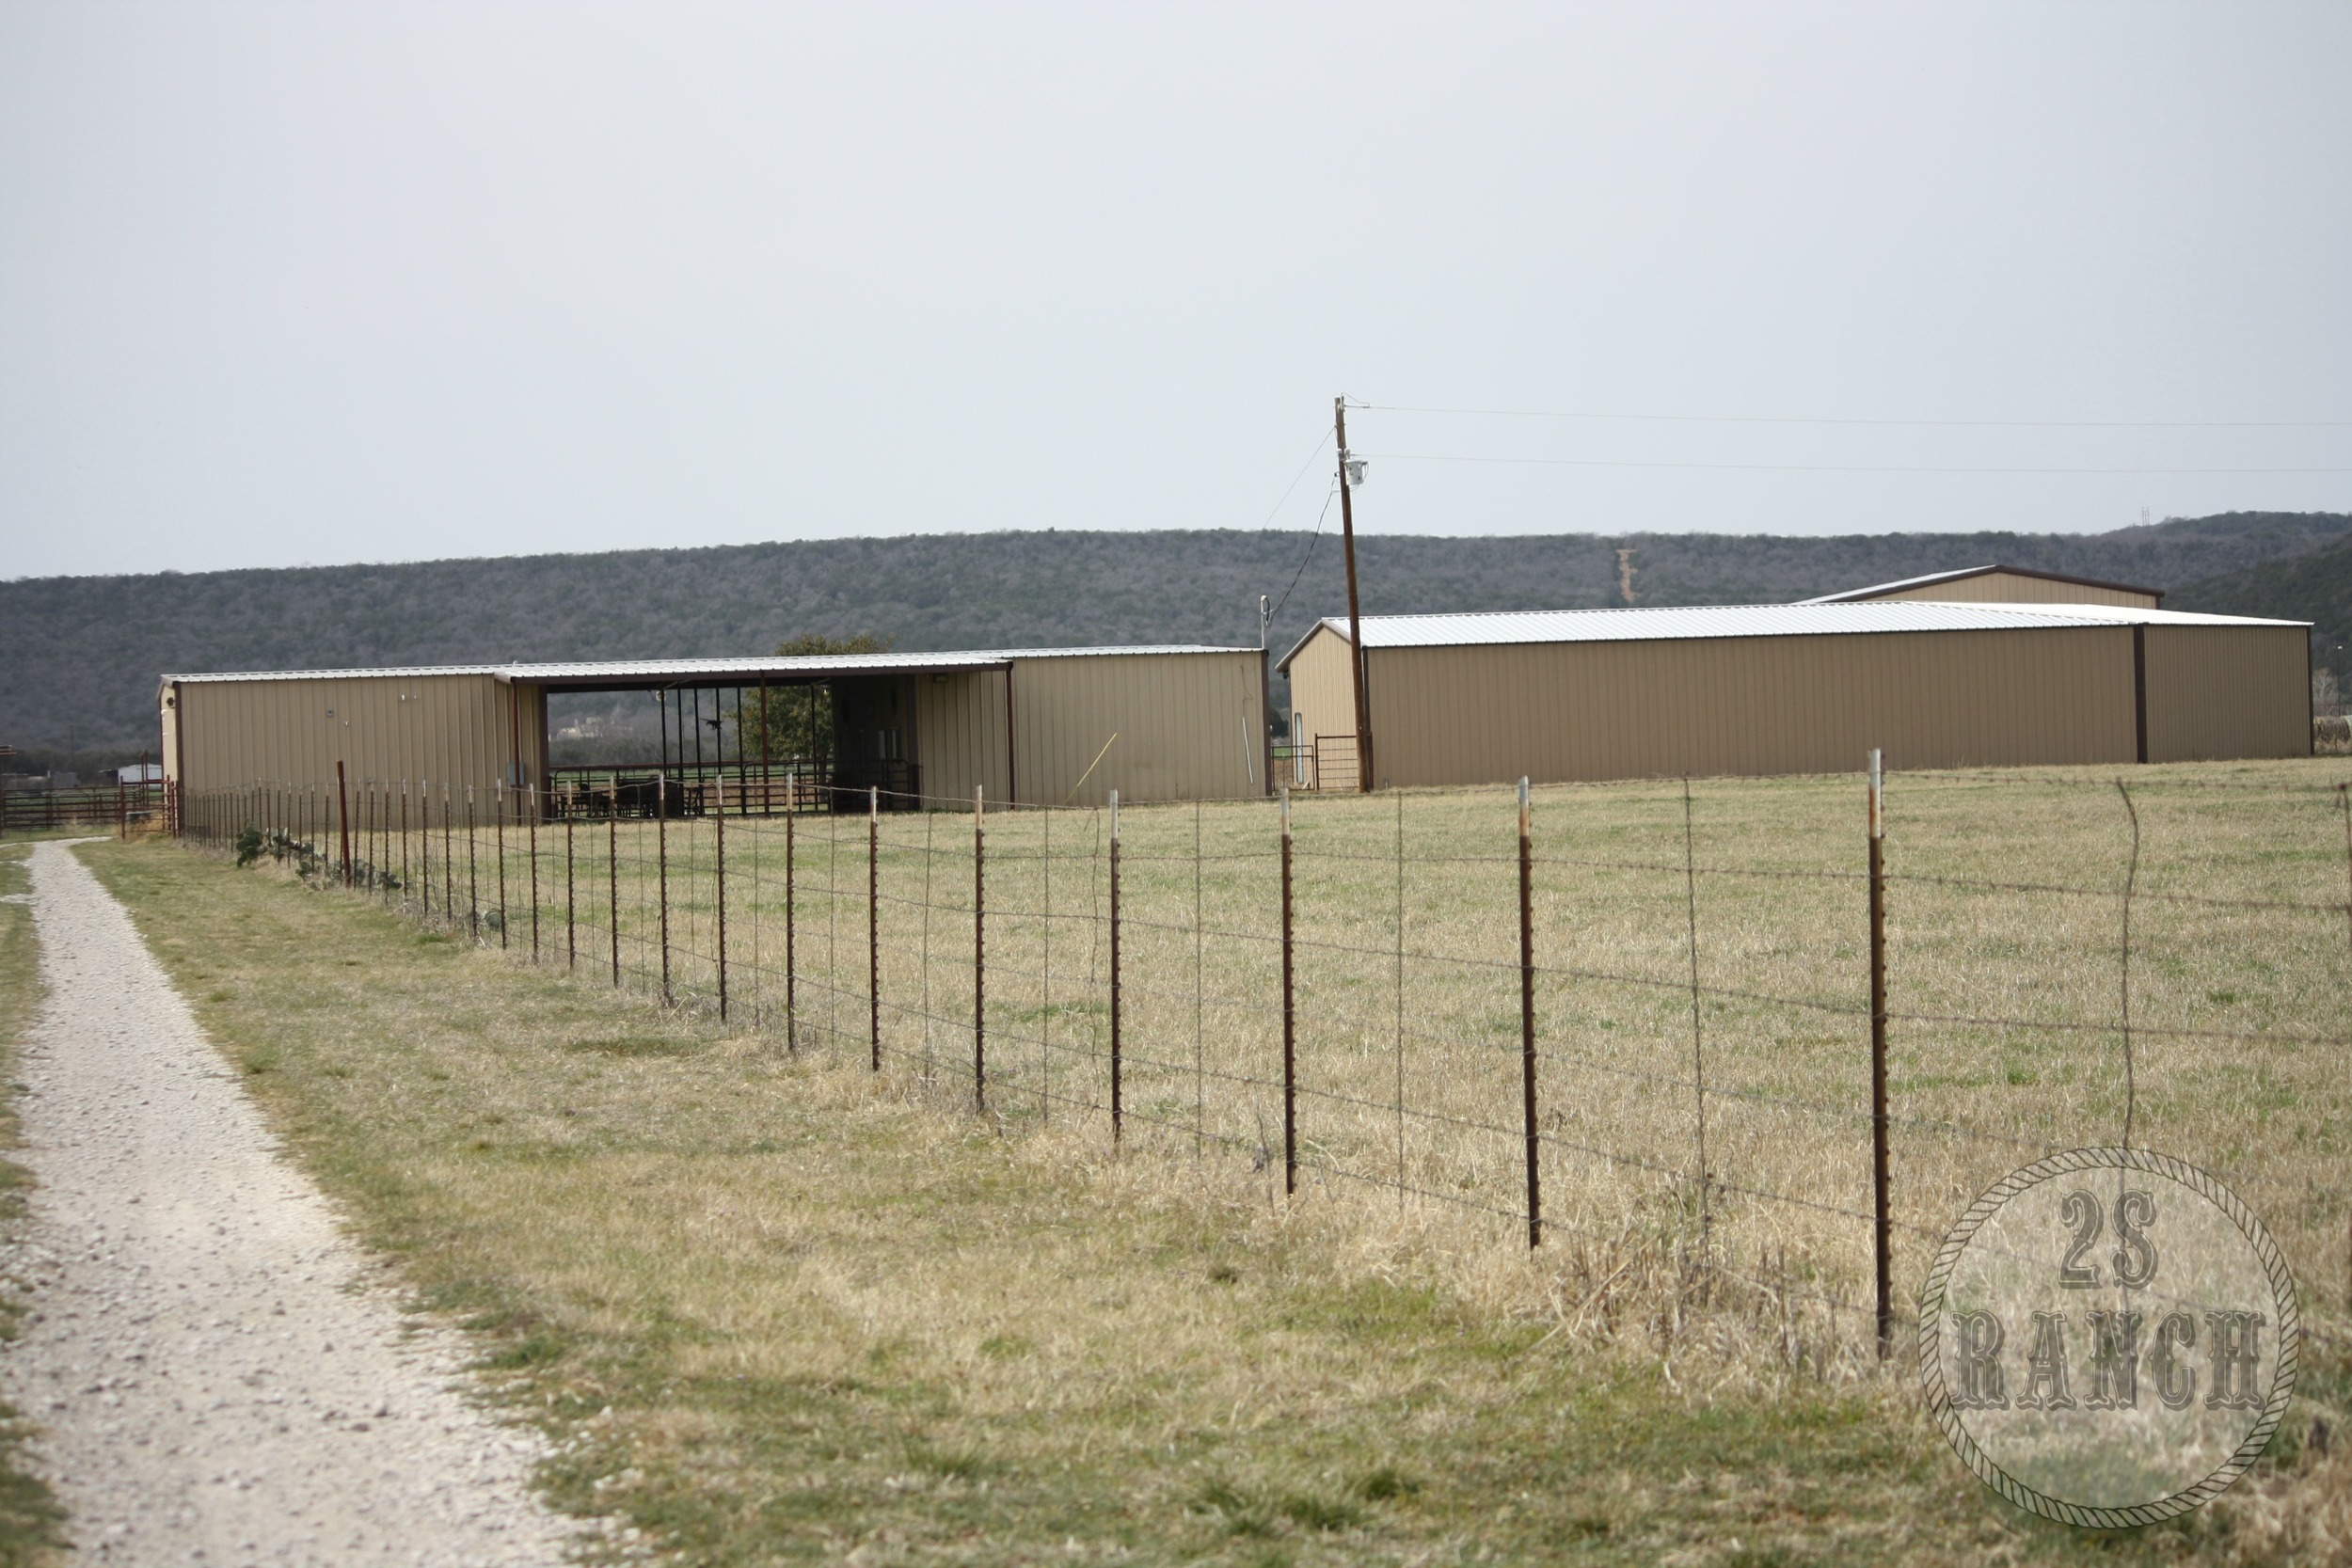 The open-air barn that we converted into our living quarters.